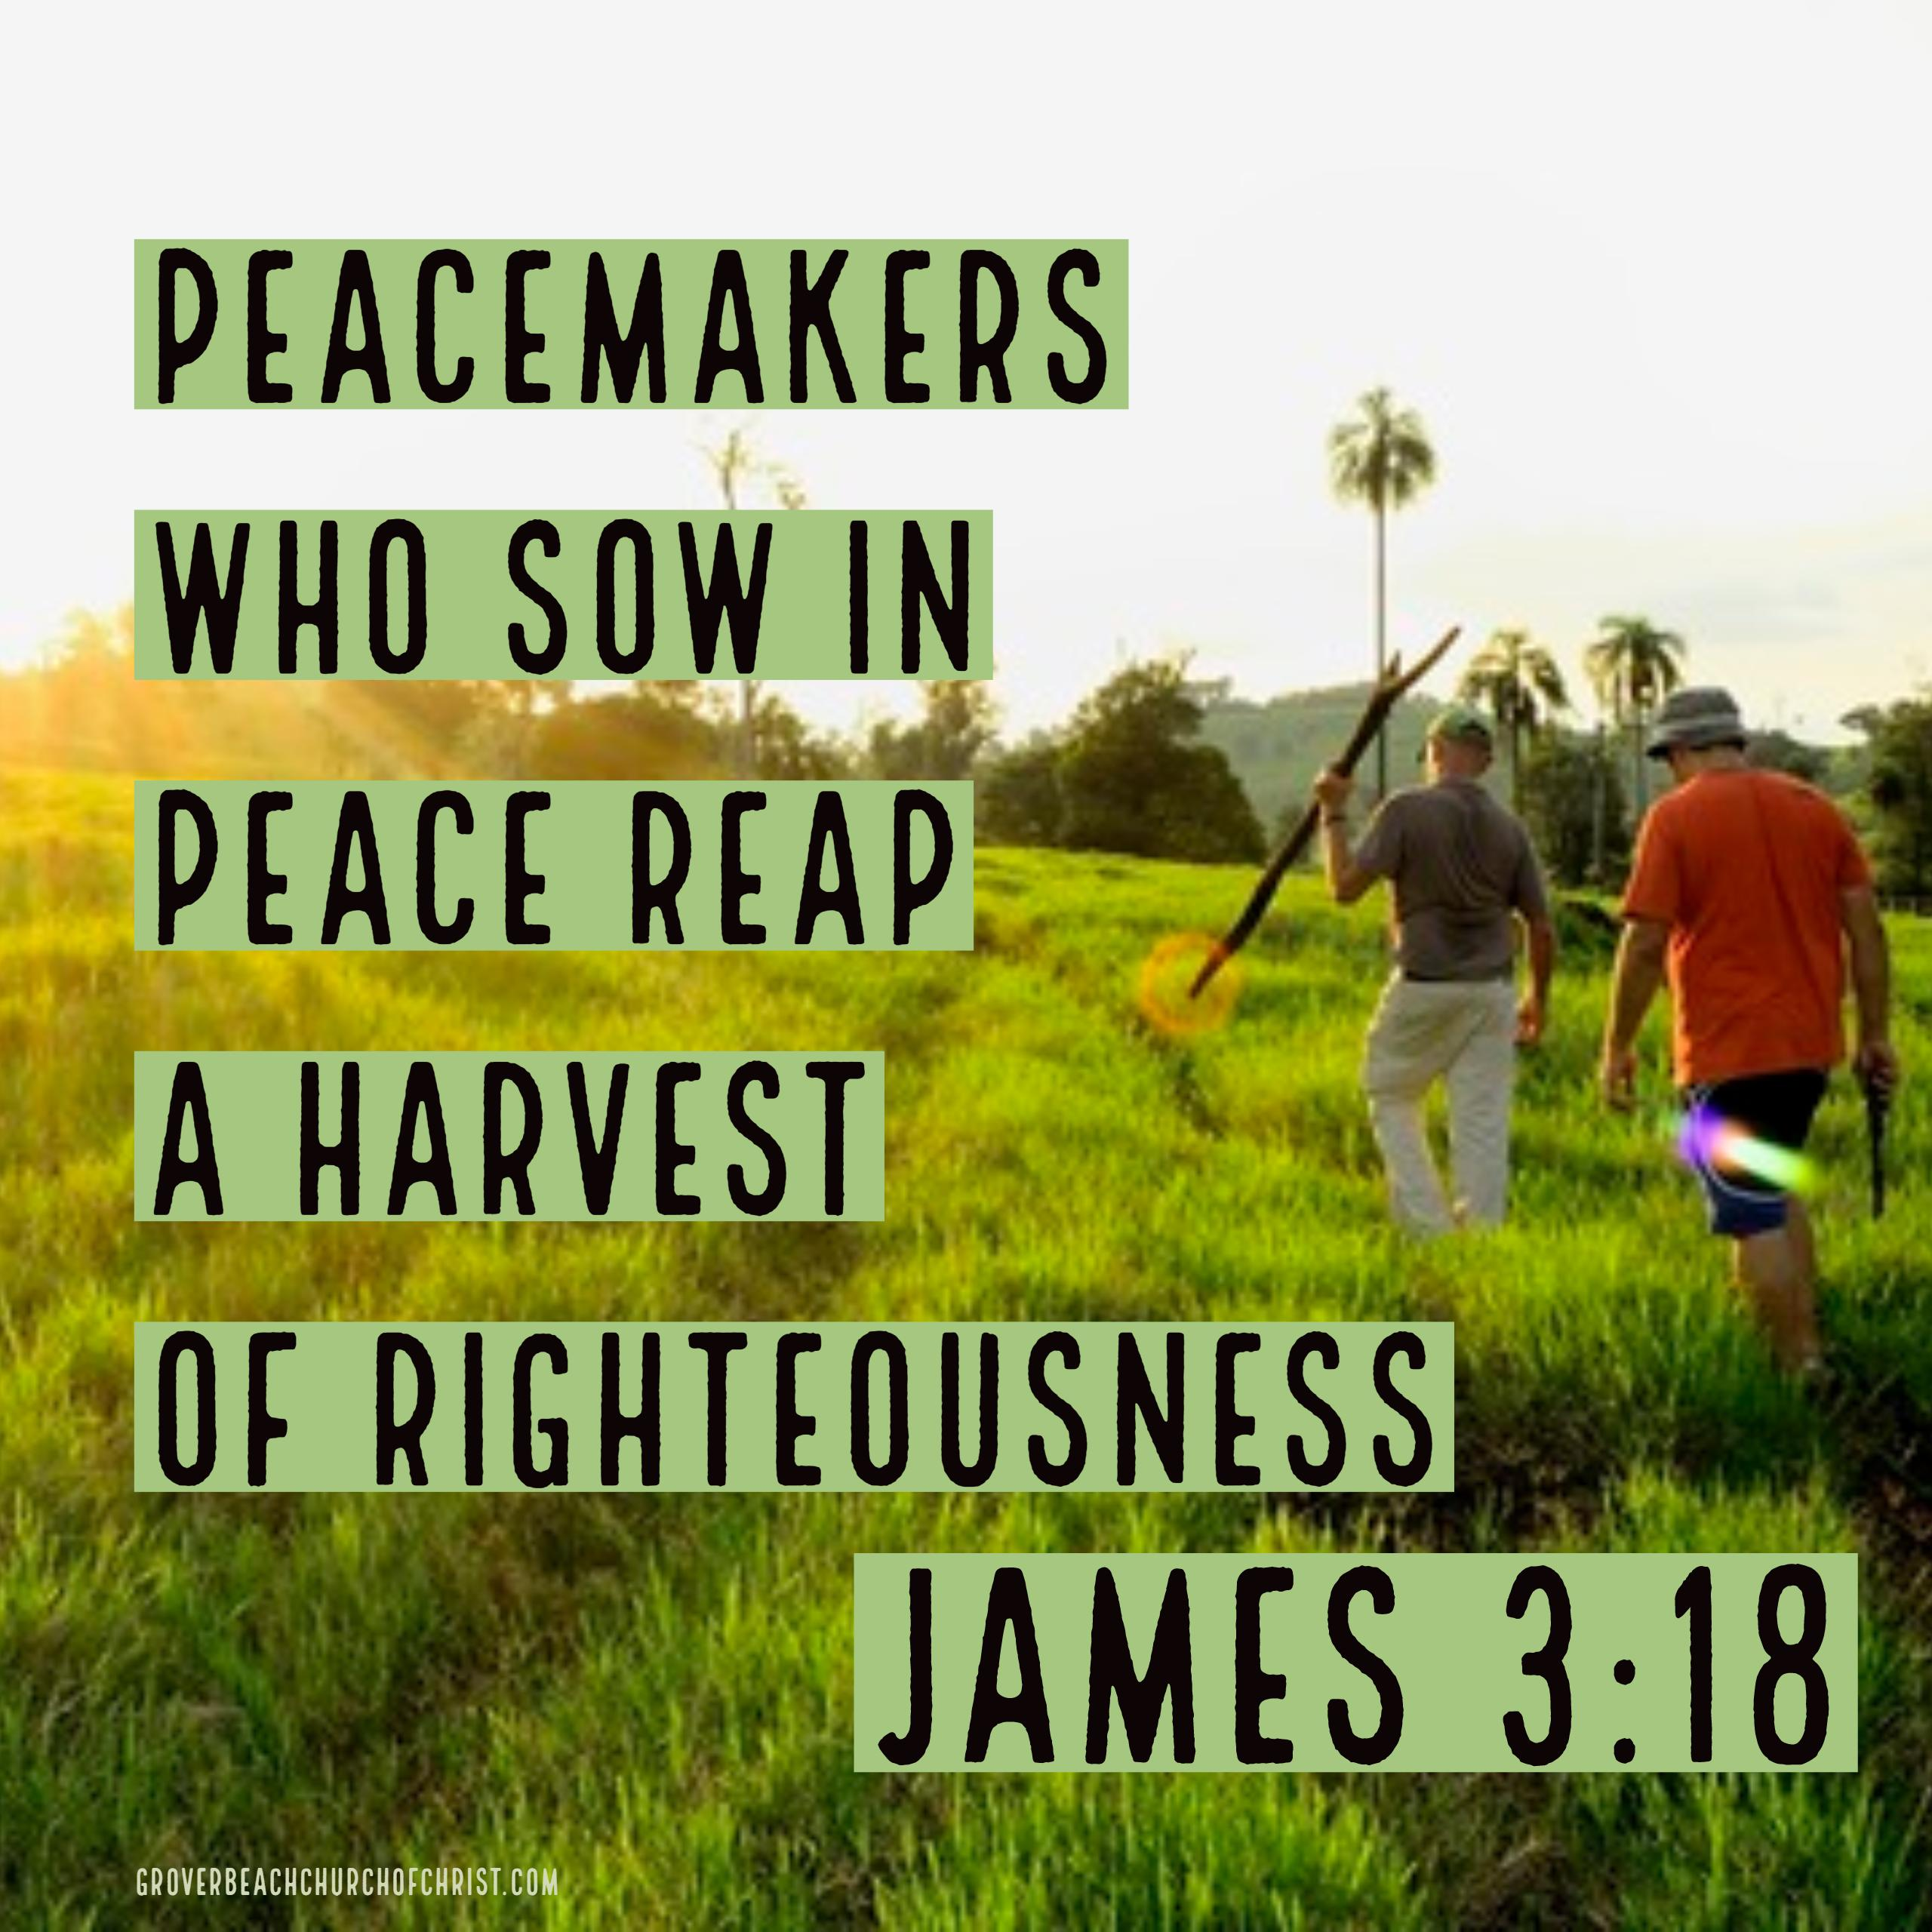 James 3:8 Peacemakers who sow